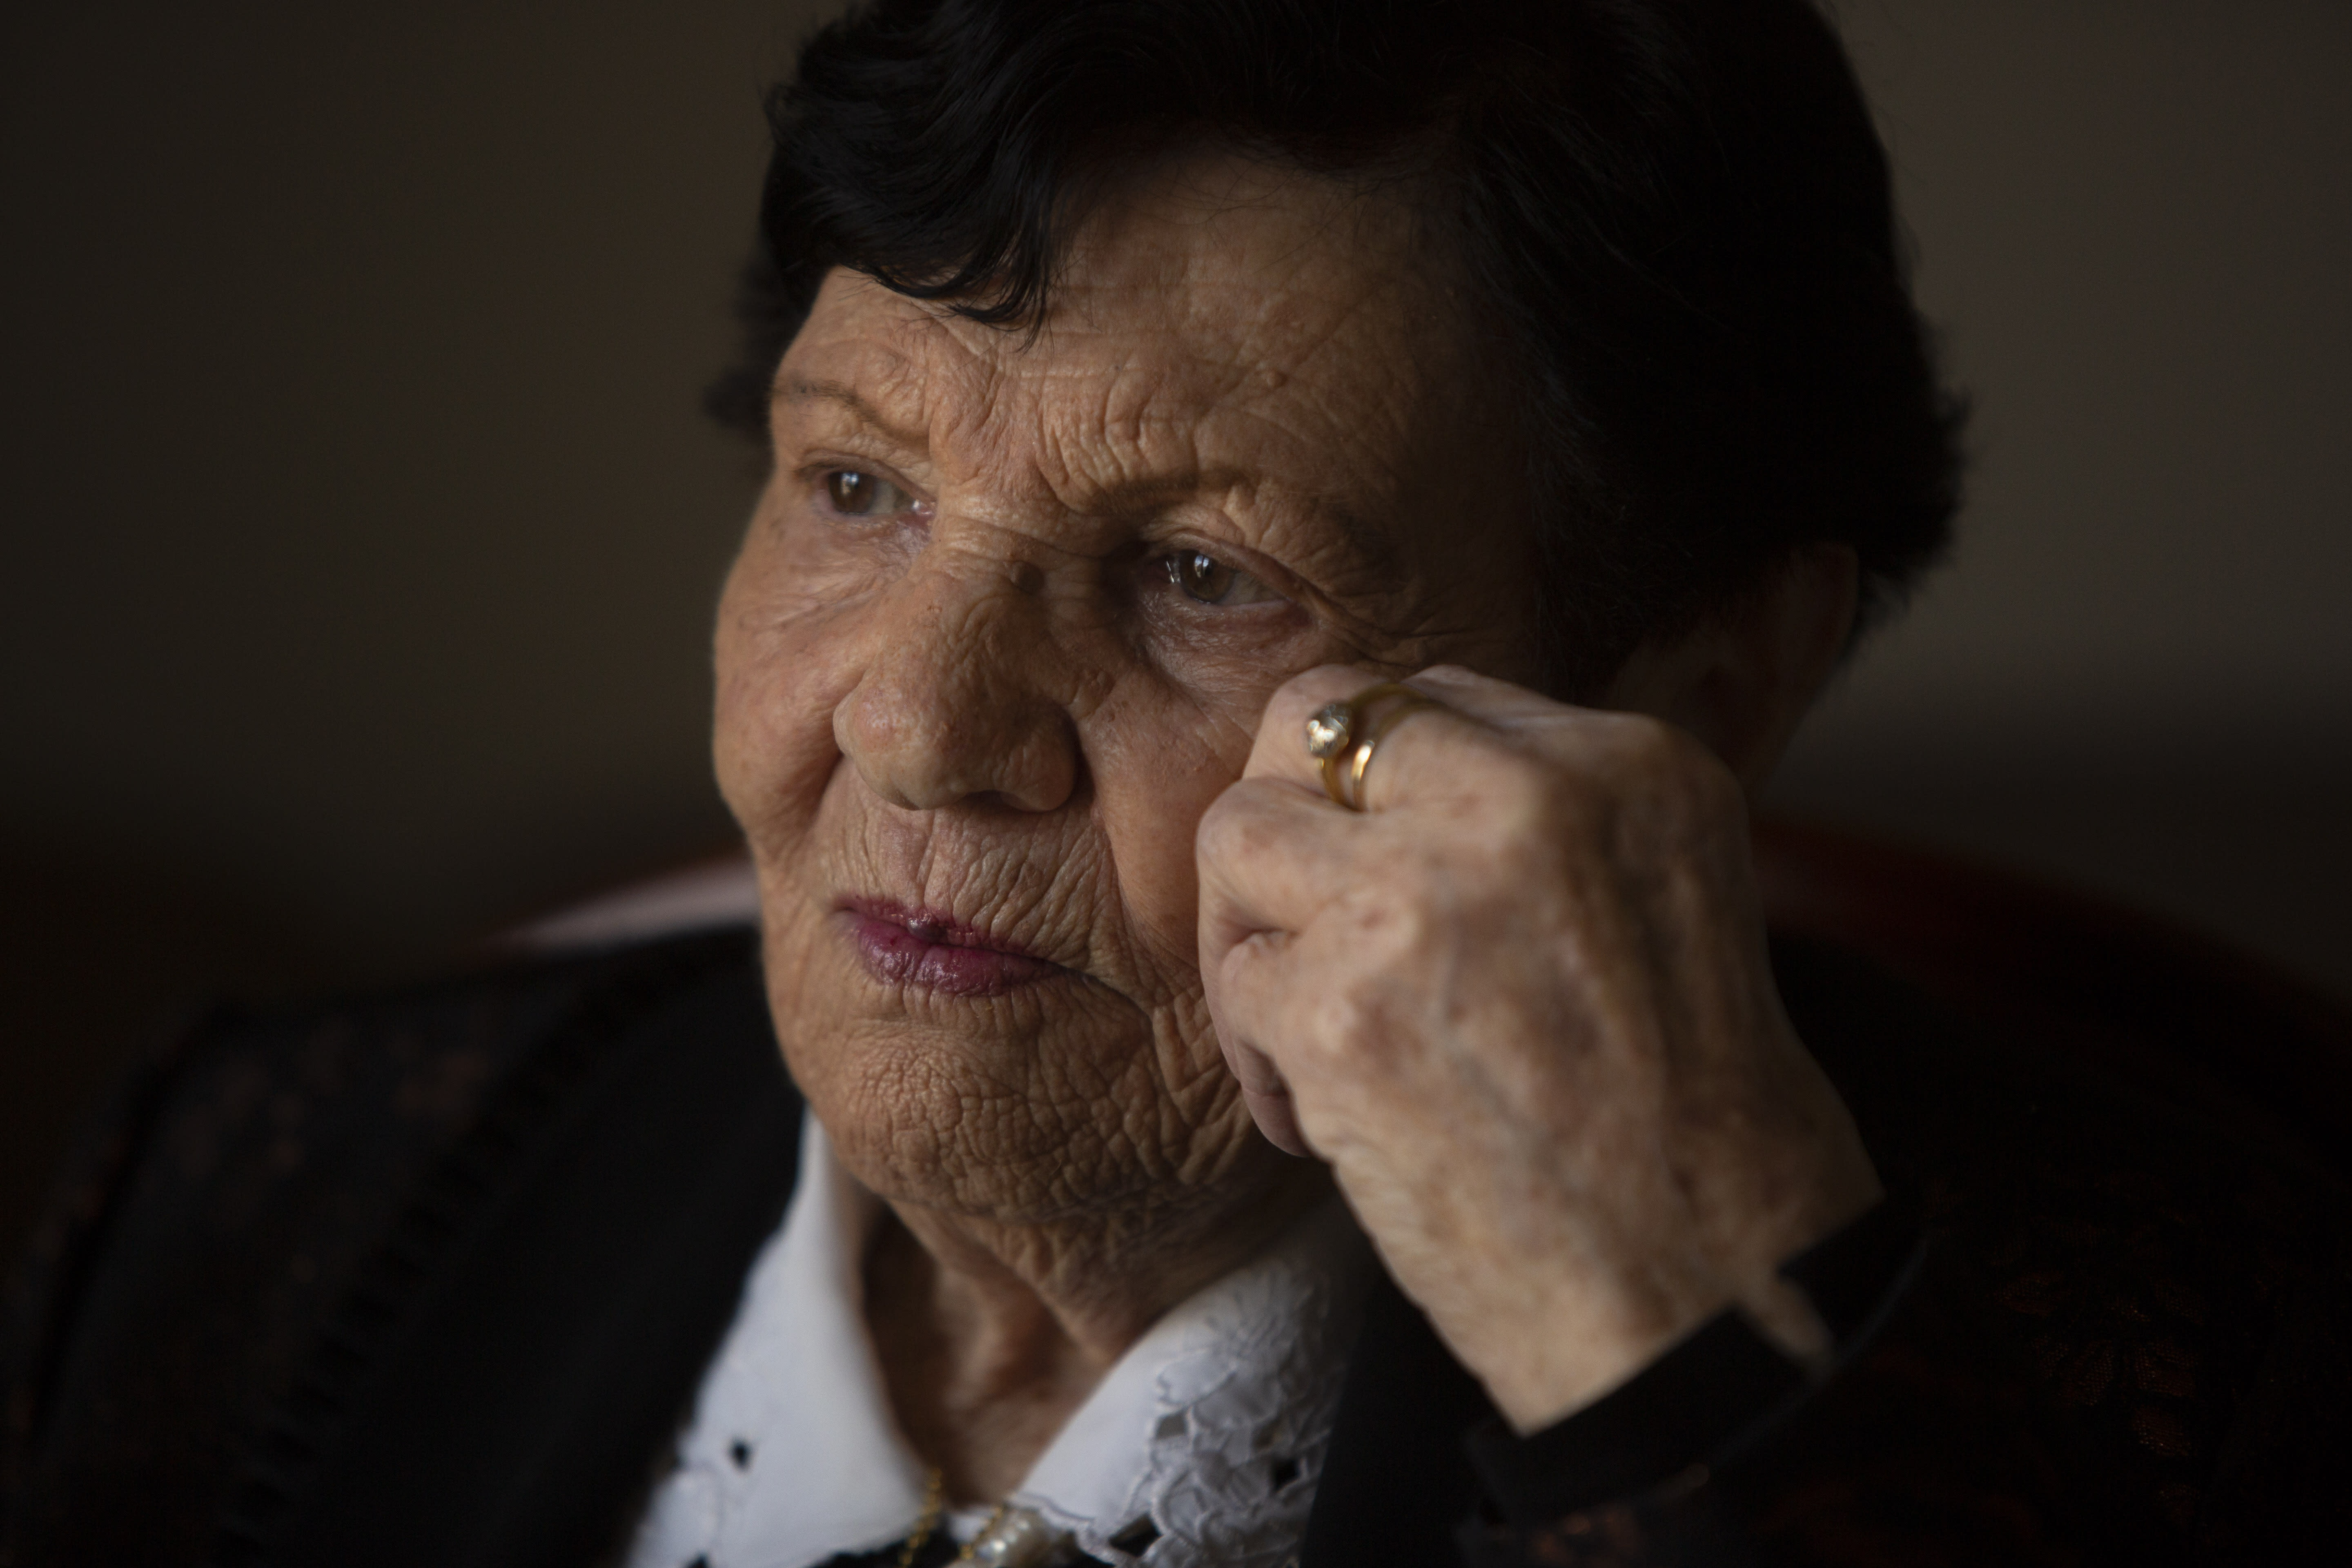 In this Wednesday, Jan. 23, 2019 photo, Holocaust survivor Cipora Feivlovich gives an interview to The Associated Press at her house in Jerusalem. As the world commemorates the anniversary of the liberation of Auschwitz on International Holocaust Remembrance Day, death camp survivor Feivlovich marks her own personal milestone as she turns 92. She's spent her most recent birthdays recounting to audiences in Israel and Germany her harrowing experiences in the infamous camp, where her parents, brother and best friends all perished. (AP Photo/Sebastian Scheiner)